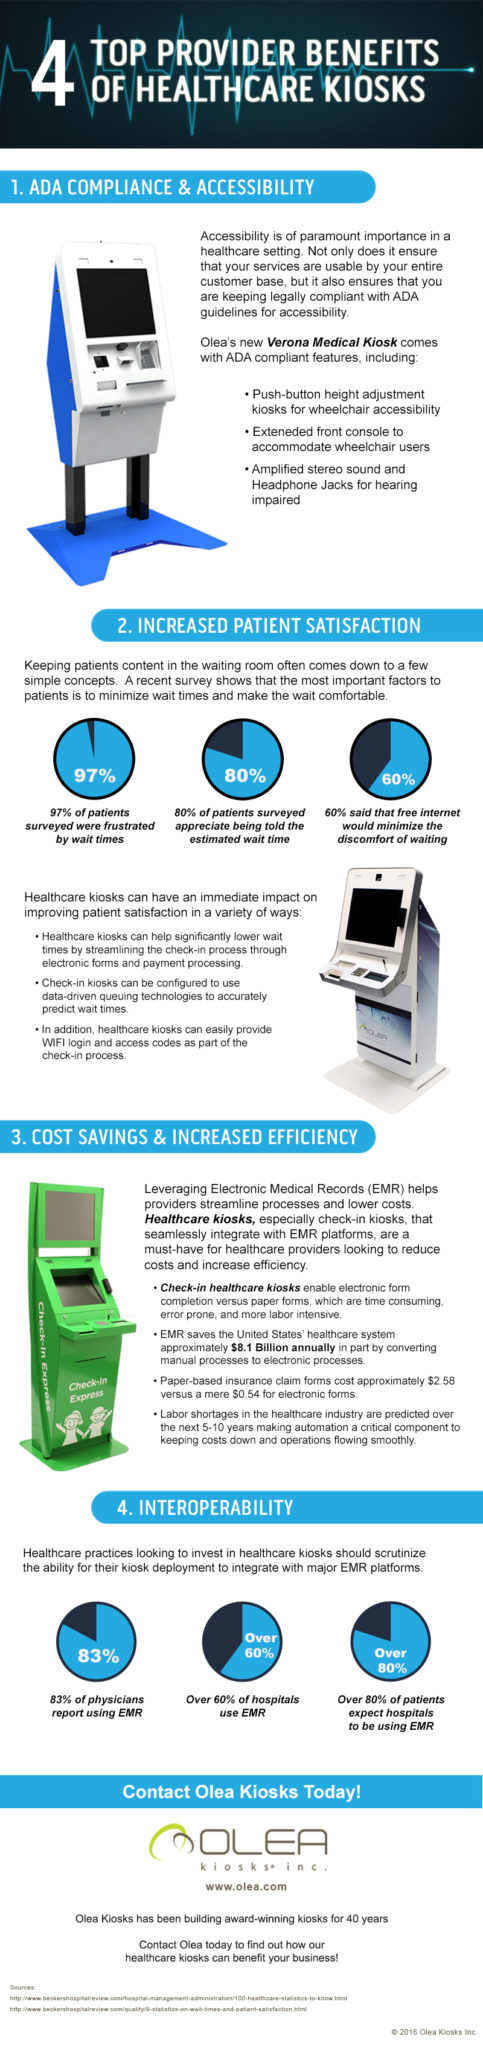 Top 4 Provider Benefits with Healthcare Kiosks